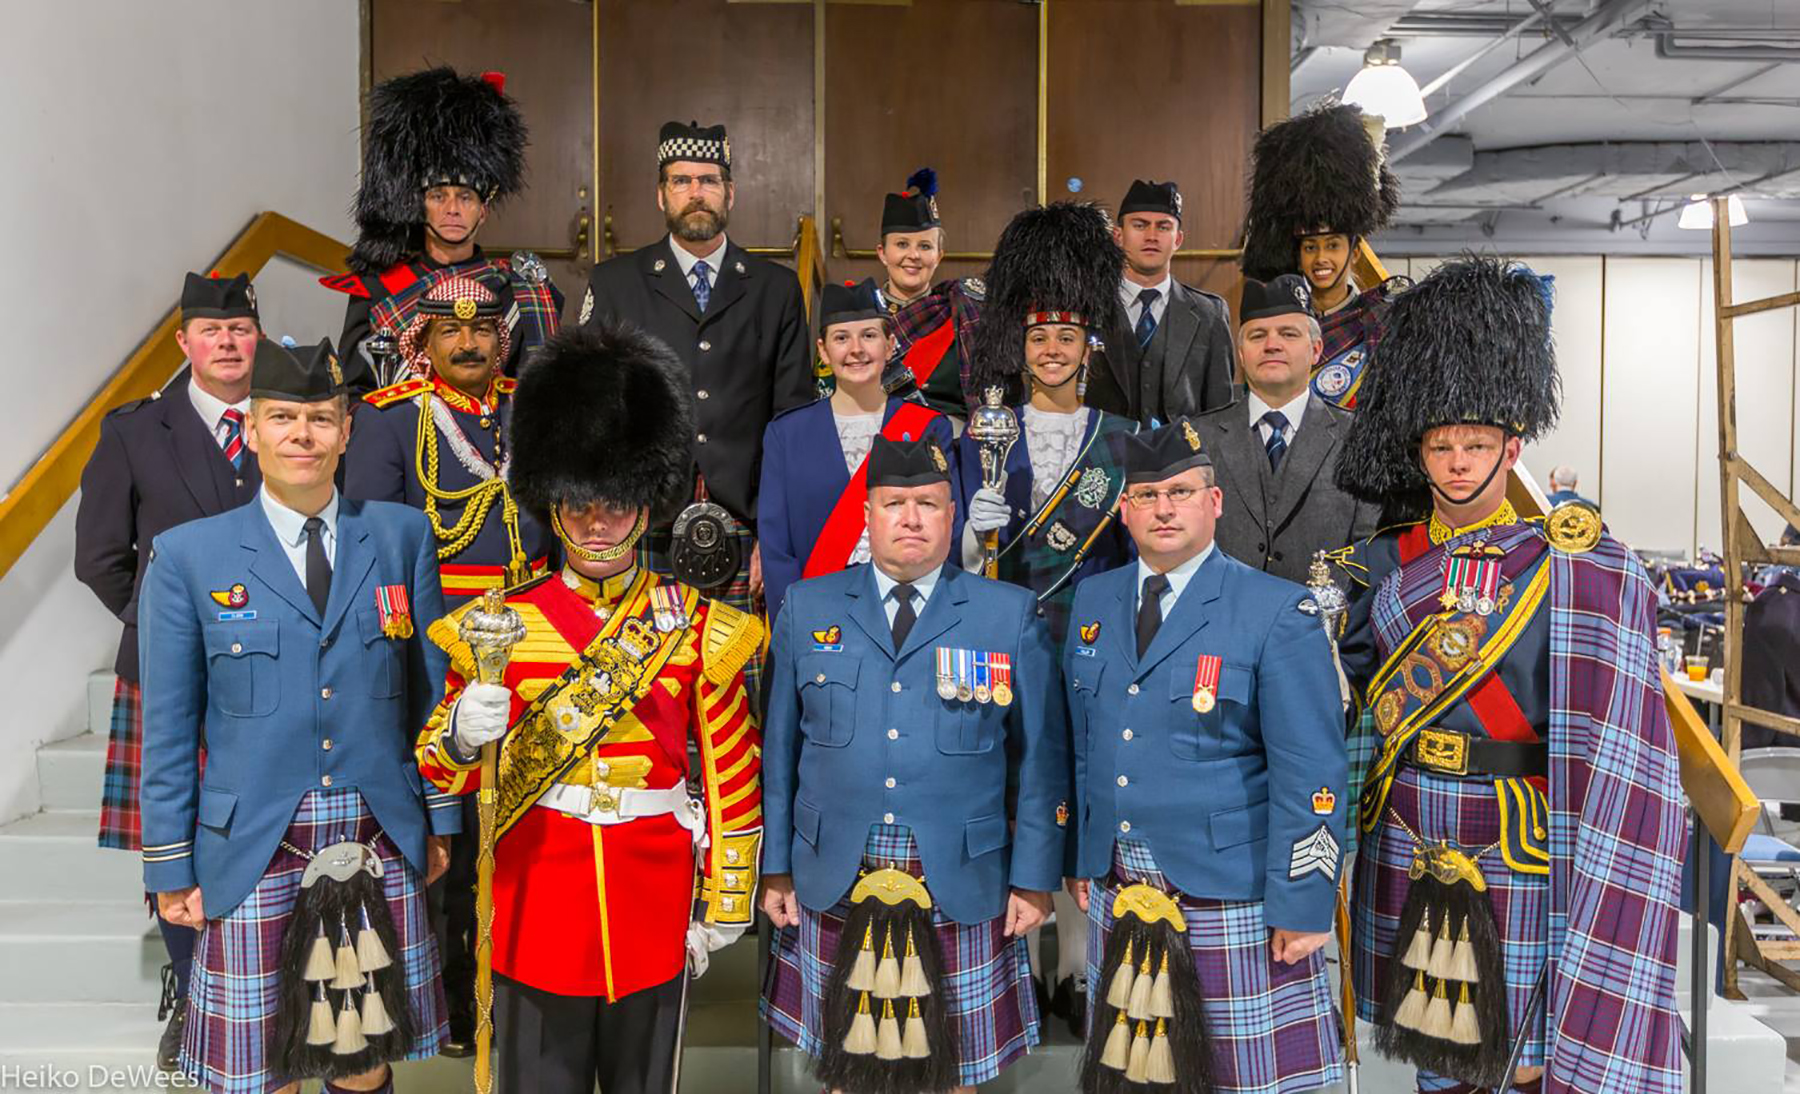 Pipes and drums leaders gather for a photo at the 2016 Virginia International Tattoo, fronted by the Royal Canadian Air Force's Captain Fraser Clark (left), Tattoo Pipe Major; Warrant Officer Joe Kiah (centre), Tattoo Leading Drummer; Warrant Officer Scott Pollon, Pipes and Drums sound engineer; and Master Corporal Ian Cleaton, 8 Wing Drum Major. PHOTO: Heiko DeWees